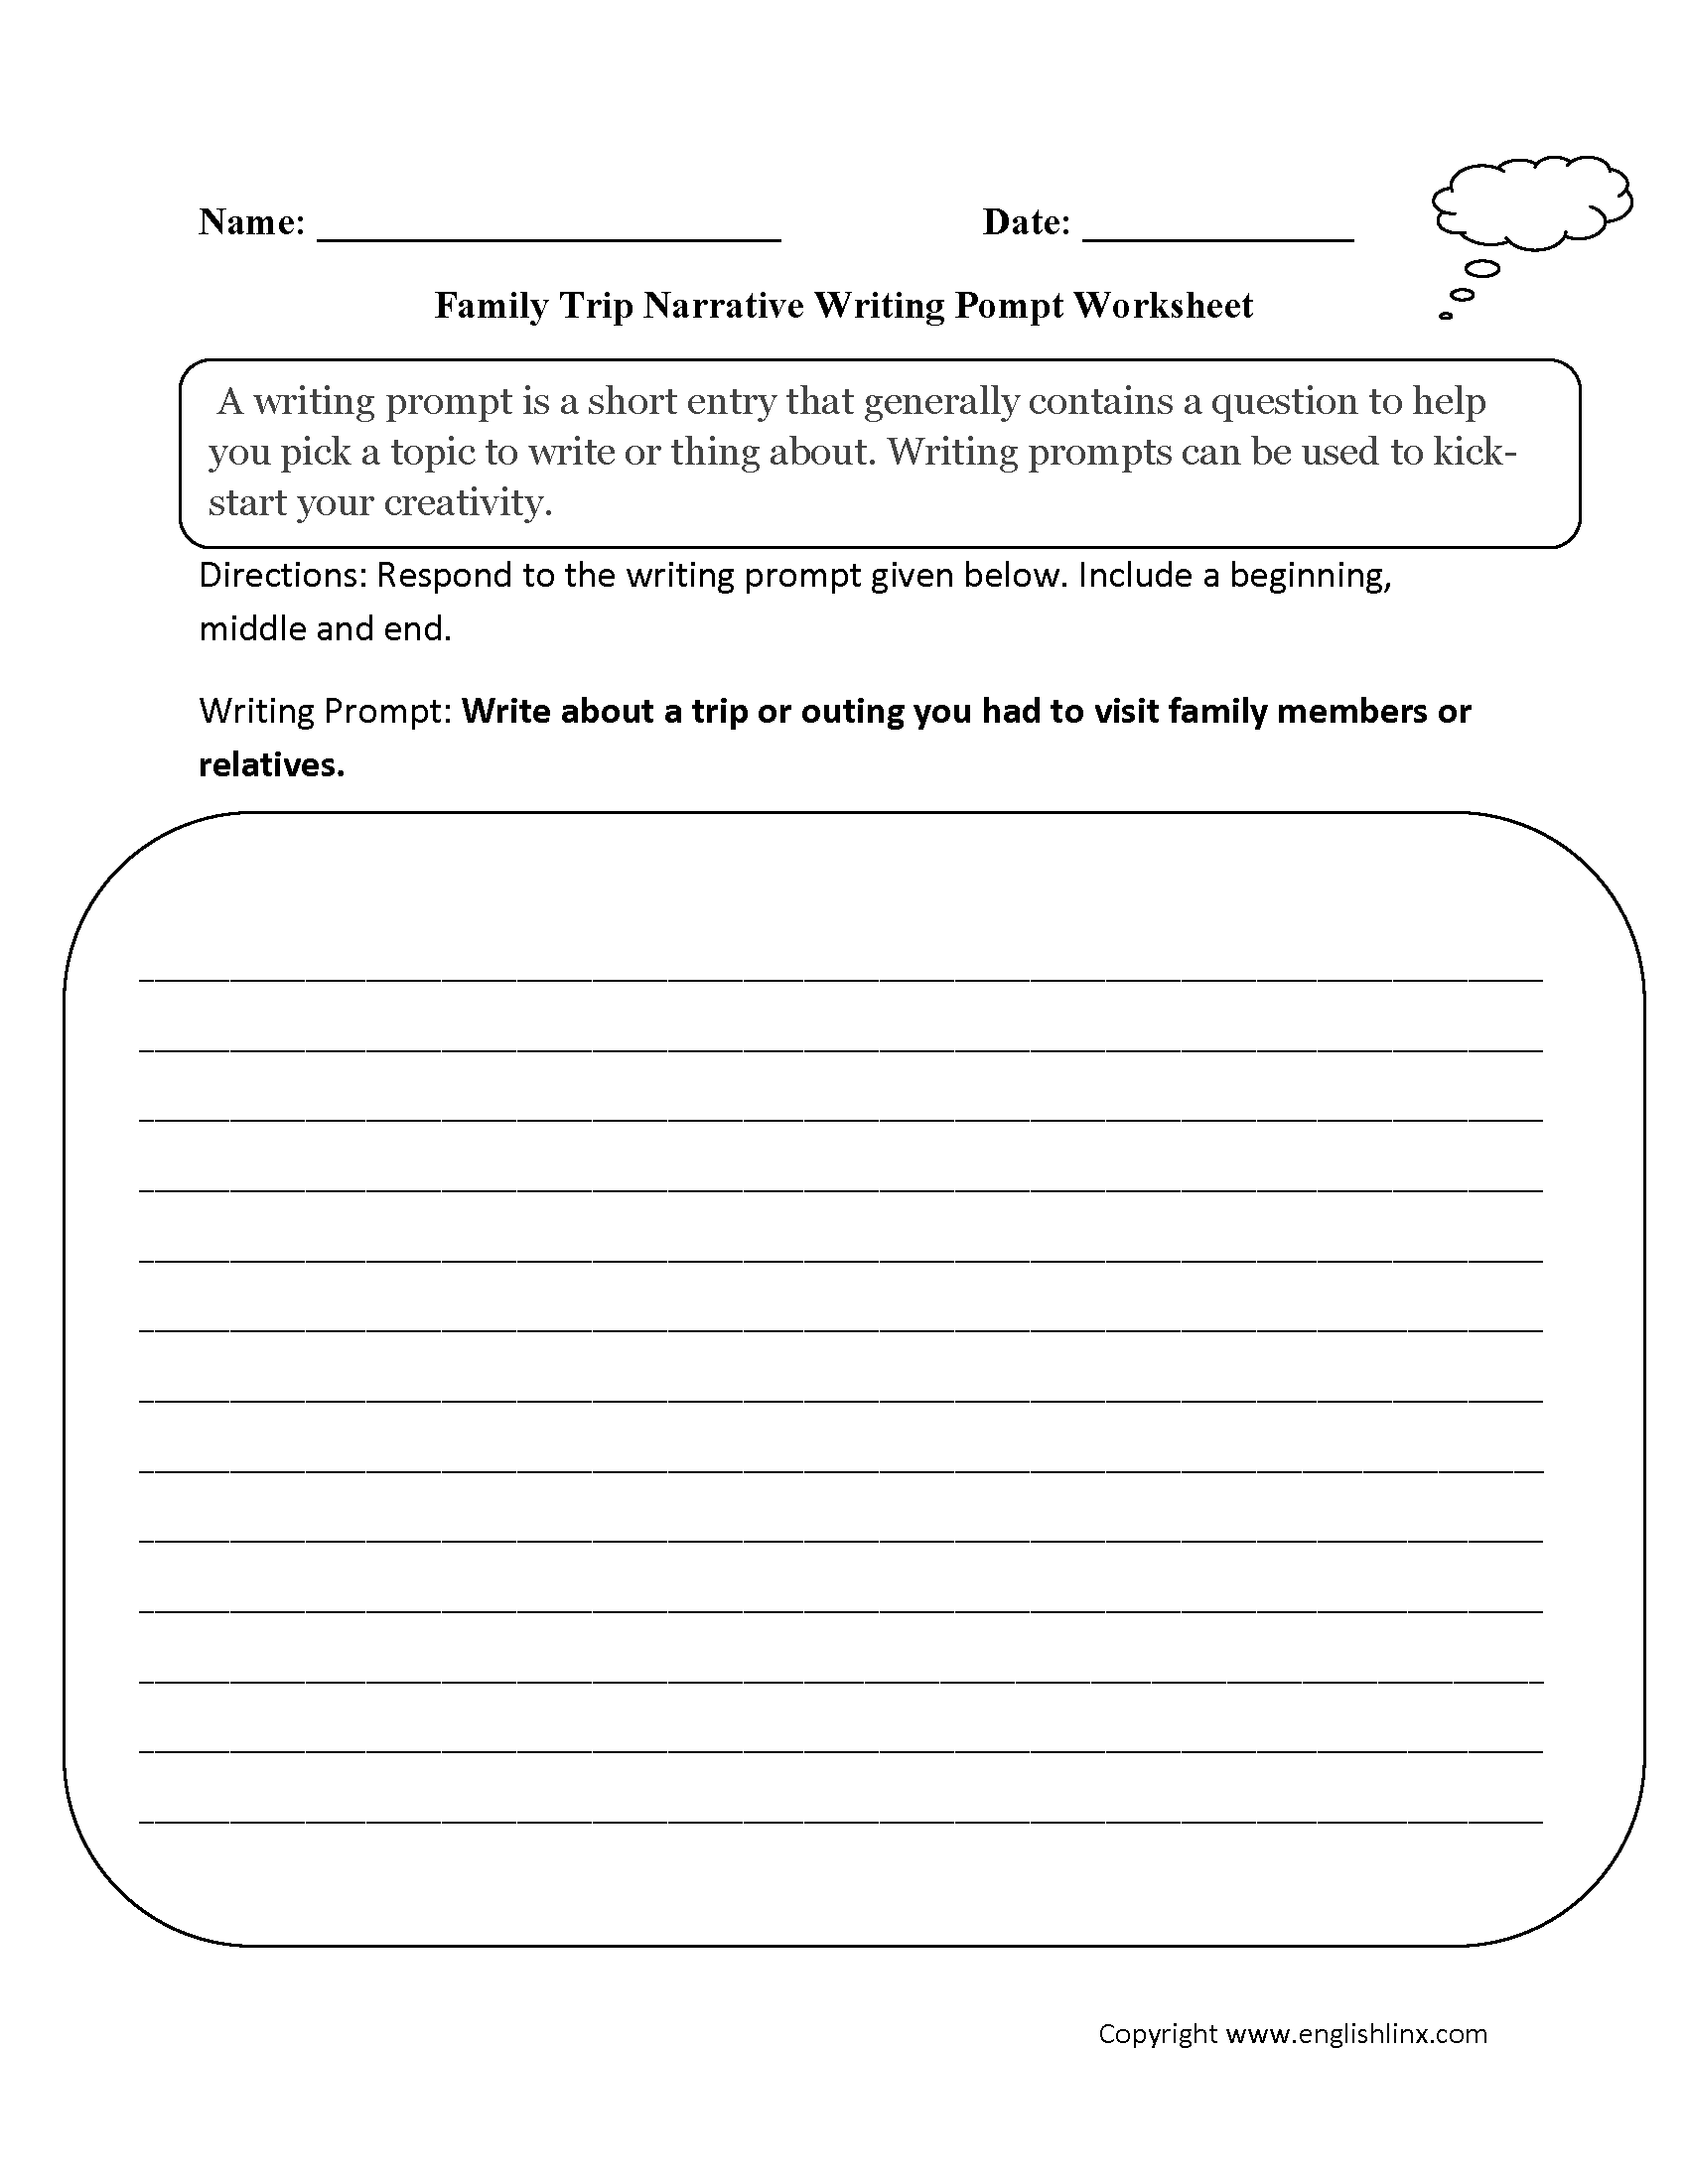 Printables Writing Worksheets For 6th Grade writing prompts worksheets narrative prompt worksheet